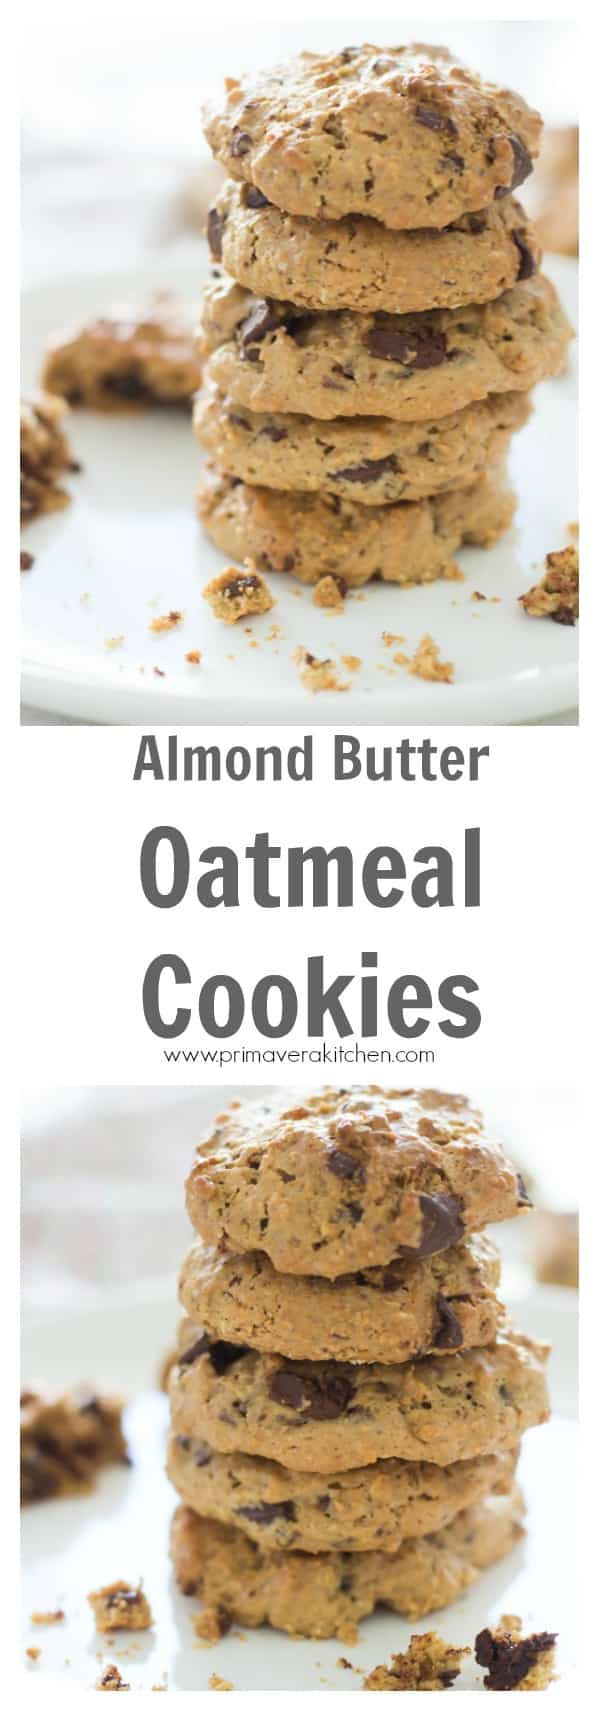 Gluten-free Almond Butter Oatmeal Cookies - Ready to bake some healthy, flourless and gluten-free Almond Butter Oatmeal Cookies? This recipe is so easy to make, deliciously comforting and also irresistible!